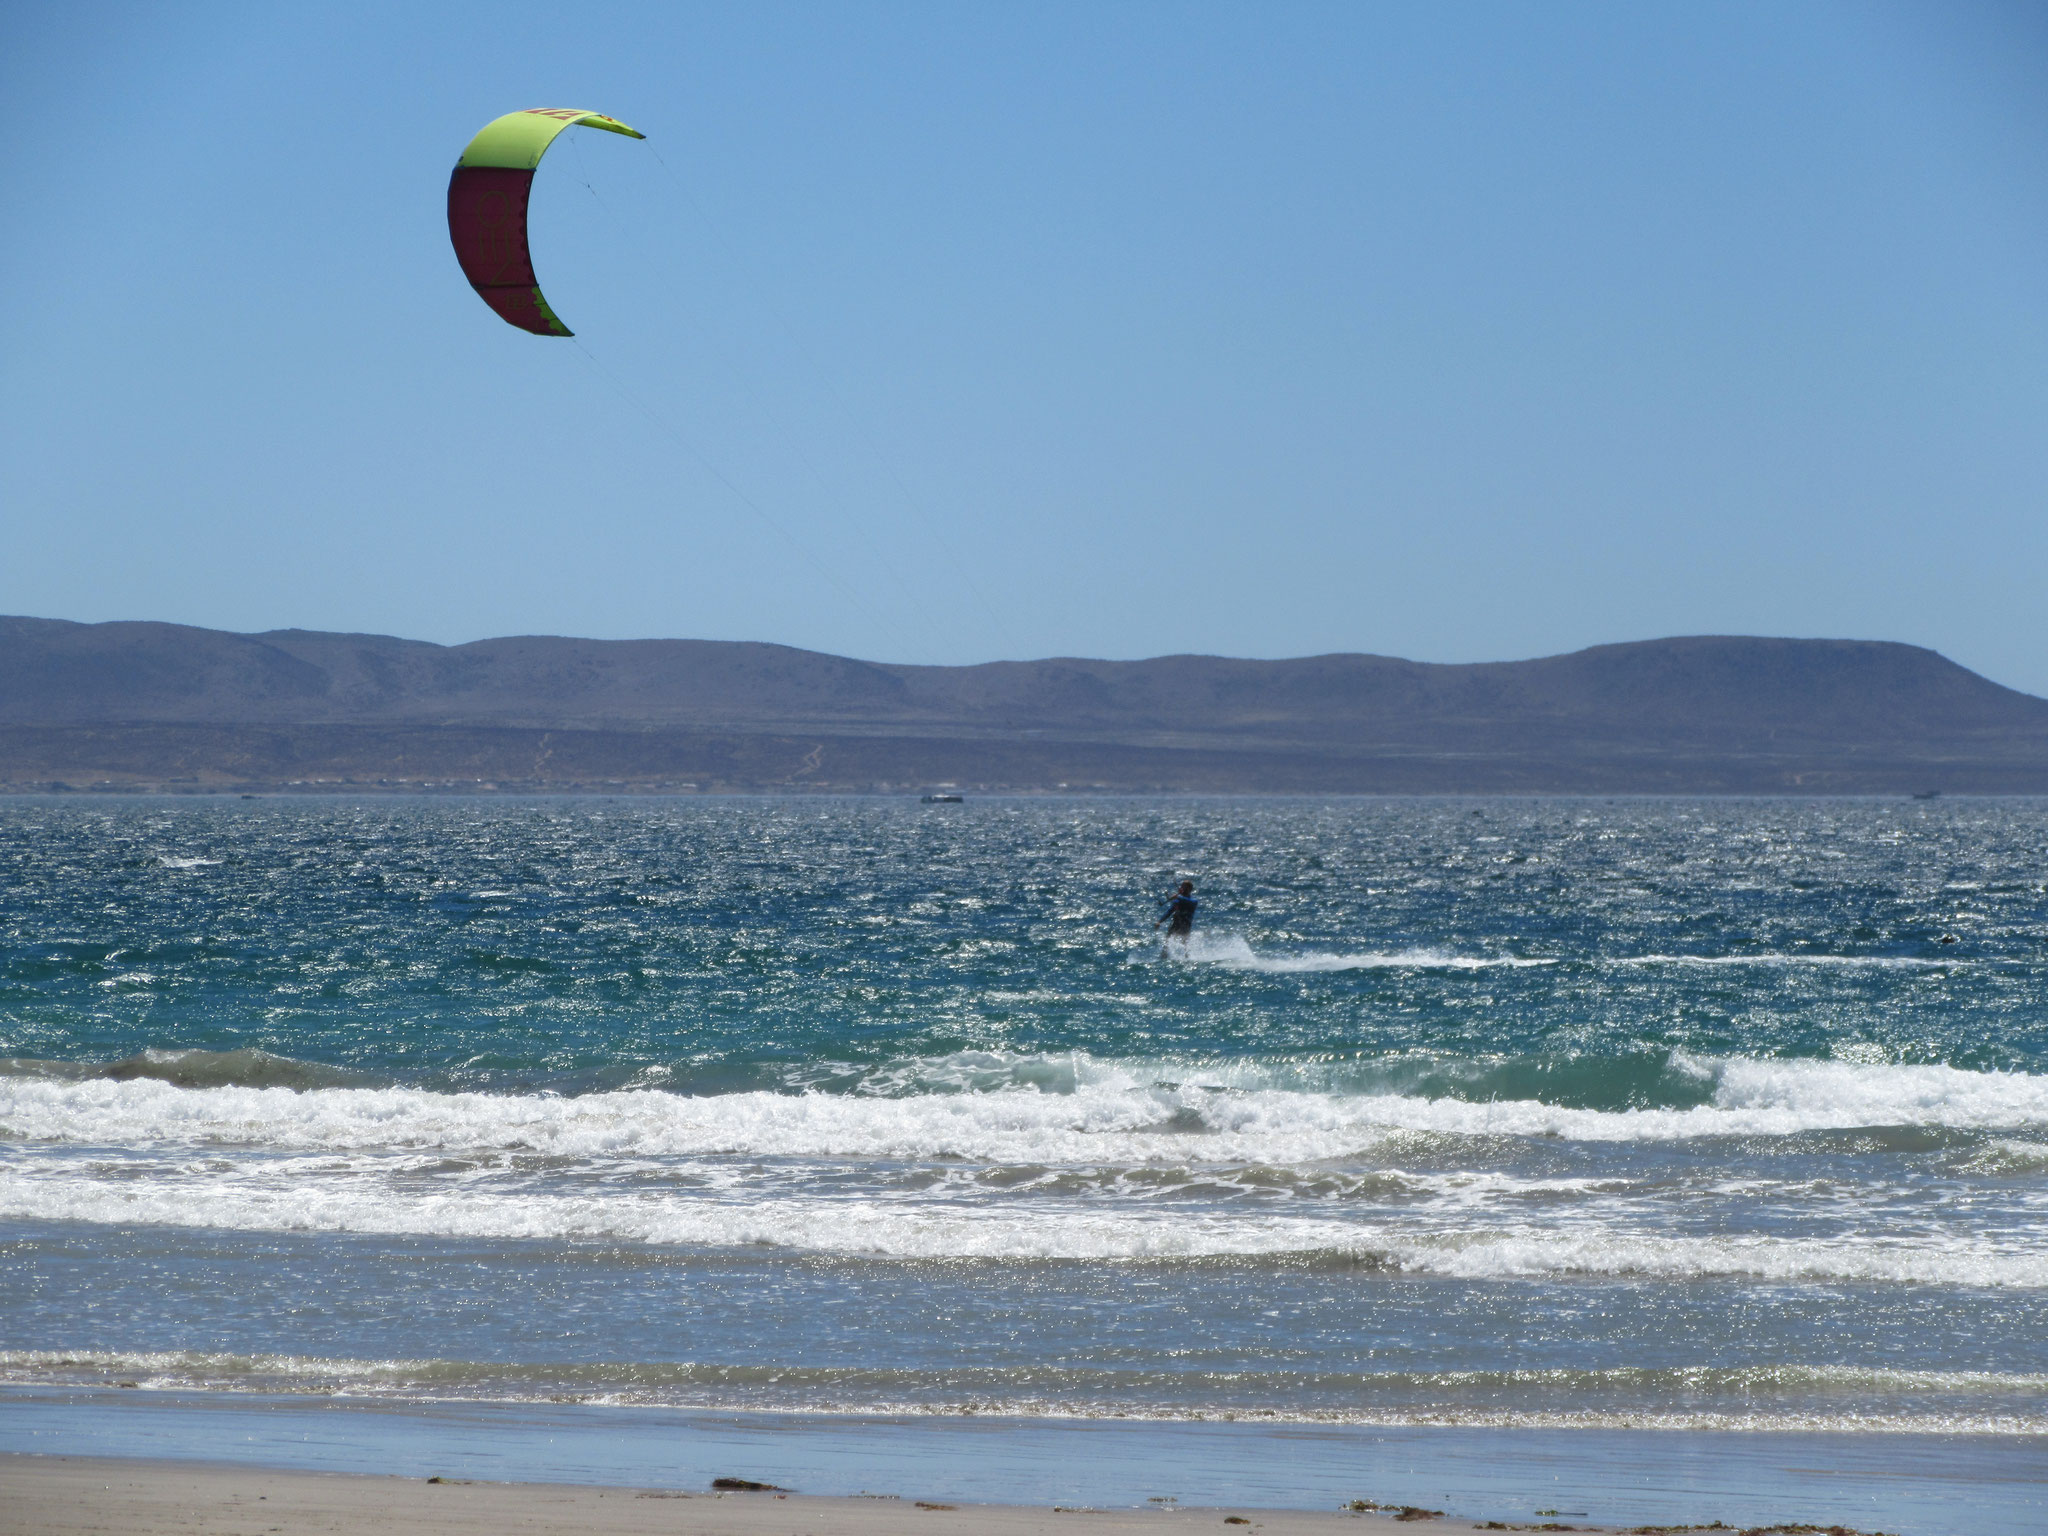 Kitesurfen in Tongoy